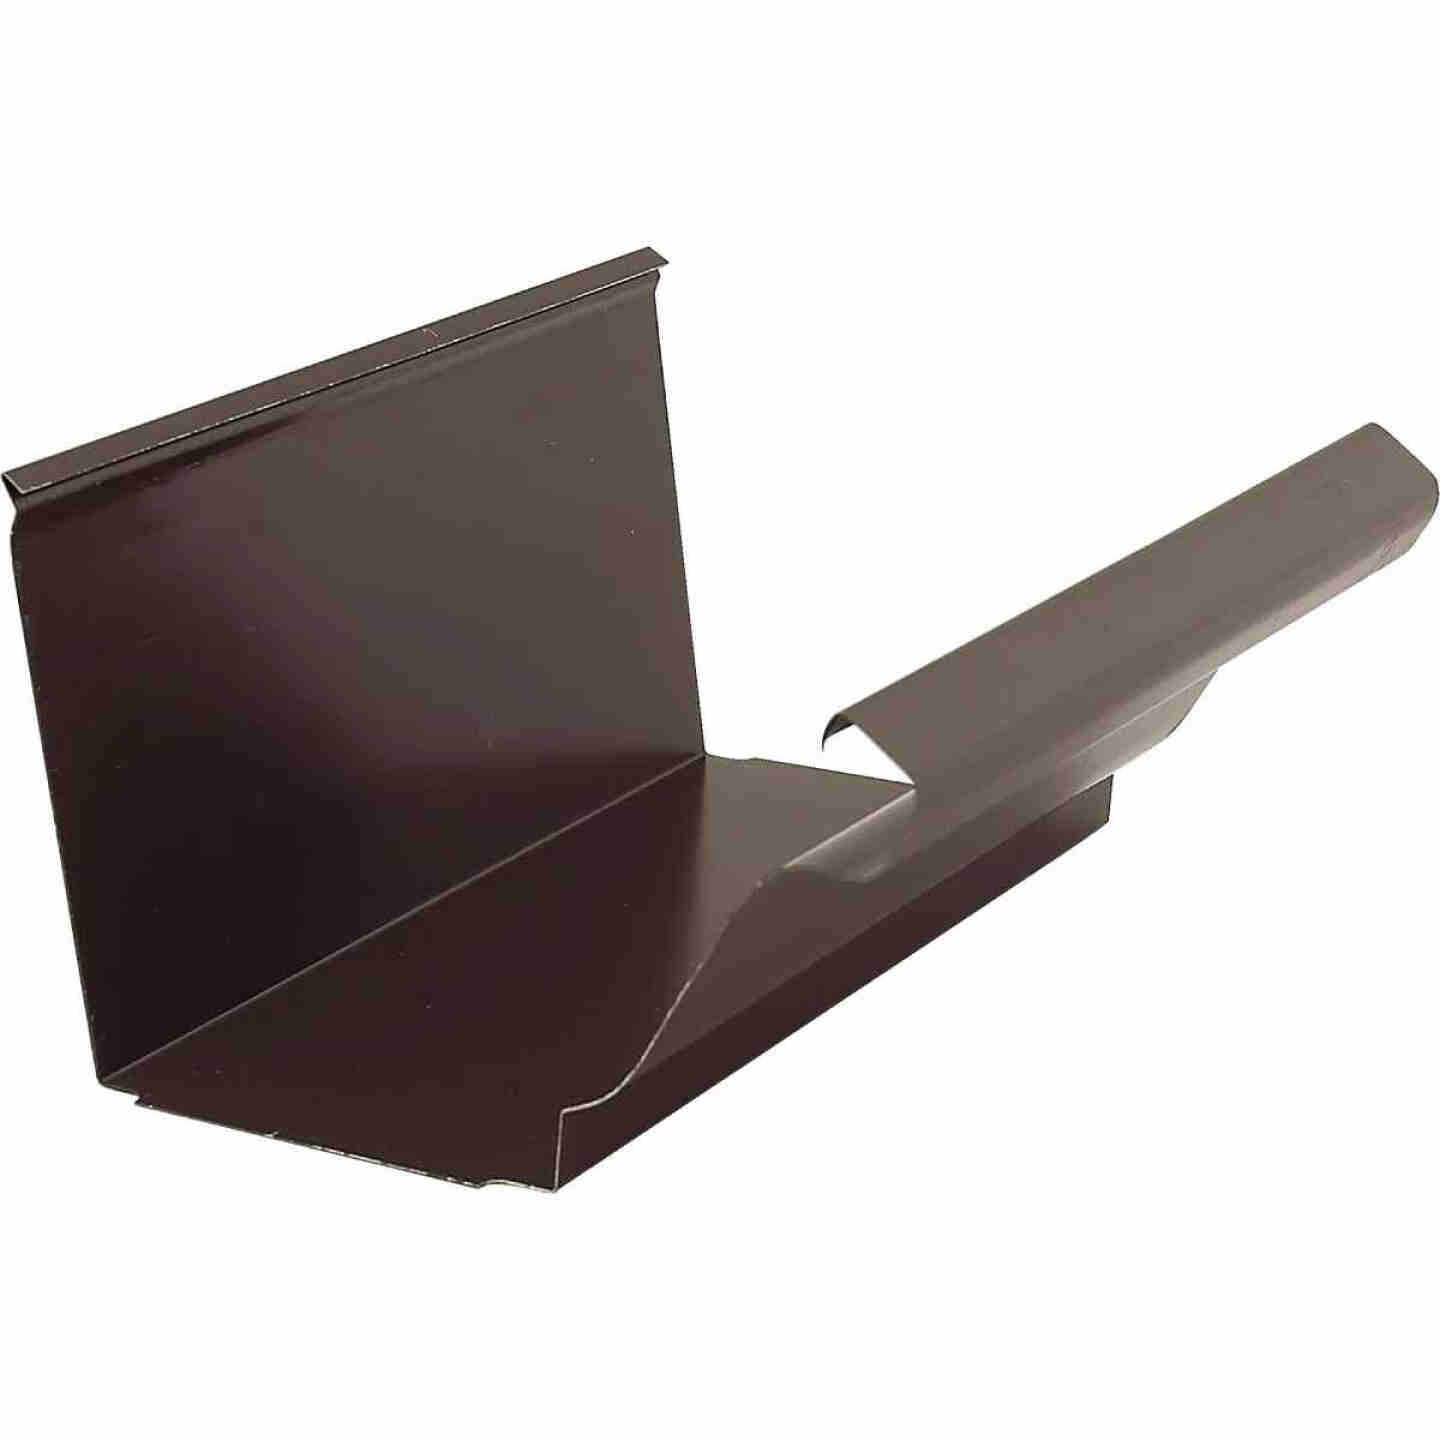 NorWesco 4 In. Galvanized Brown Slip-Joint Gutter Connector Image 1